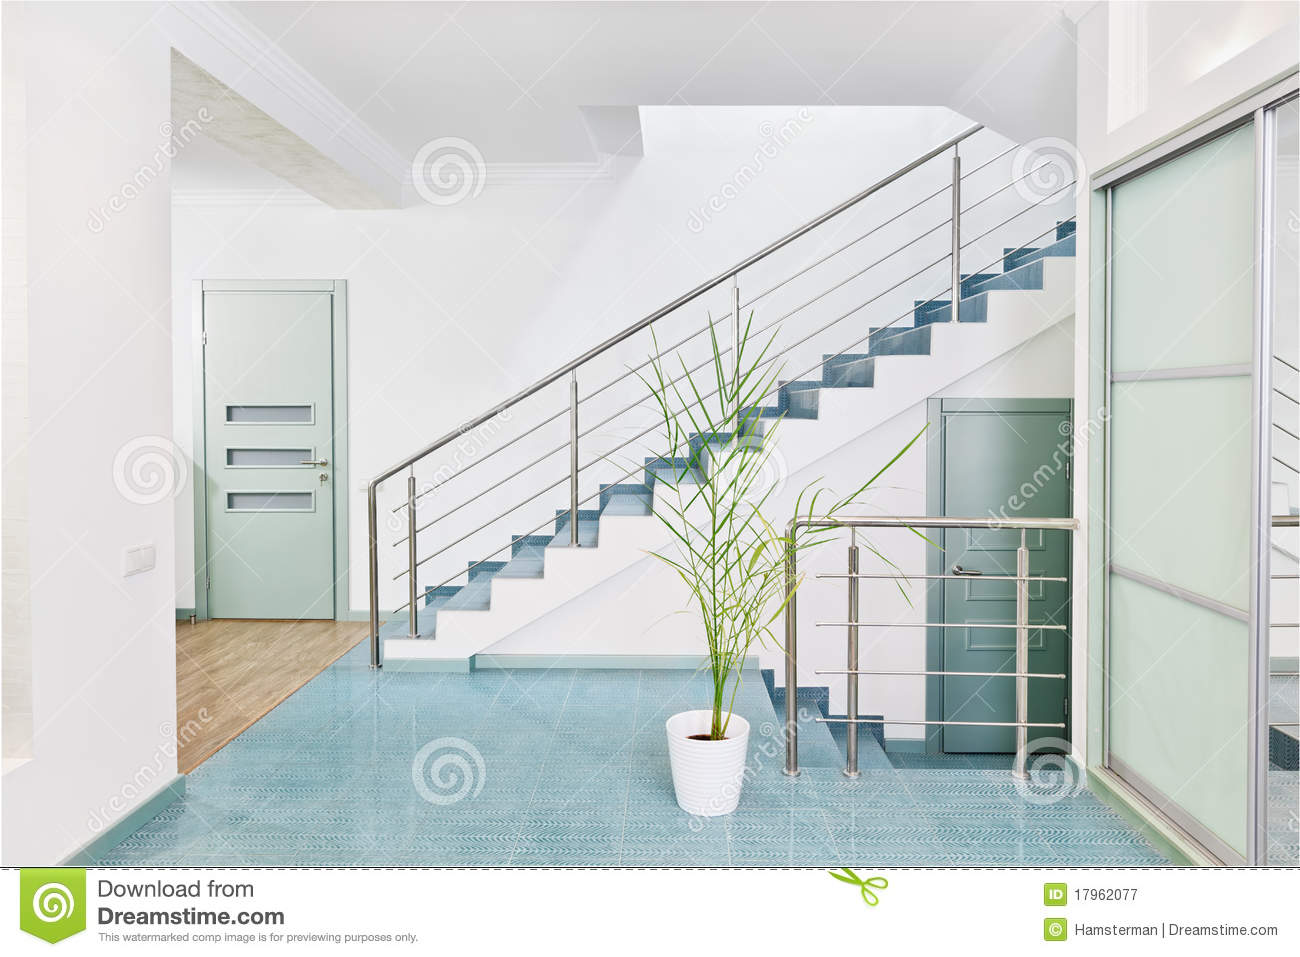 Part of modern hall interior with metal staircase stock for Escalier interieur moderne